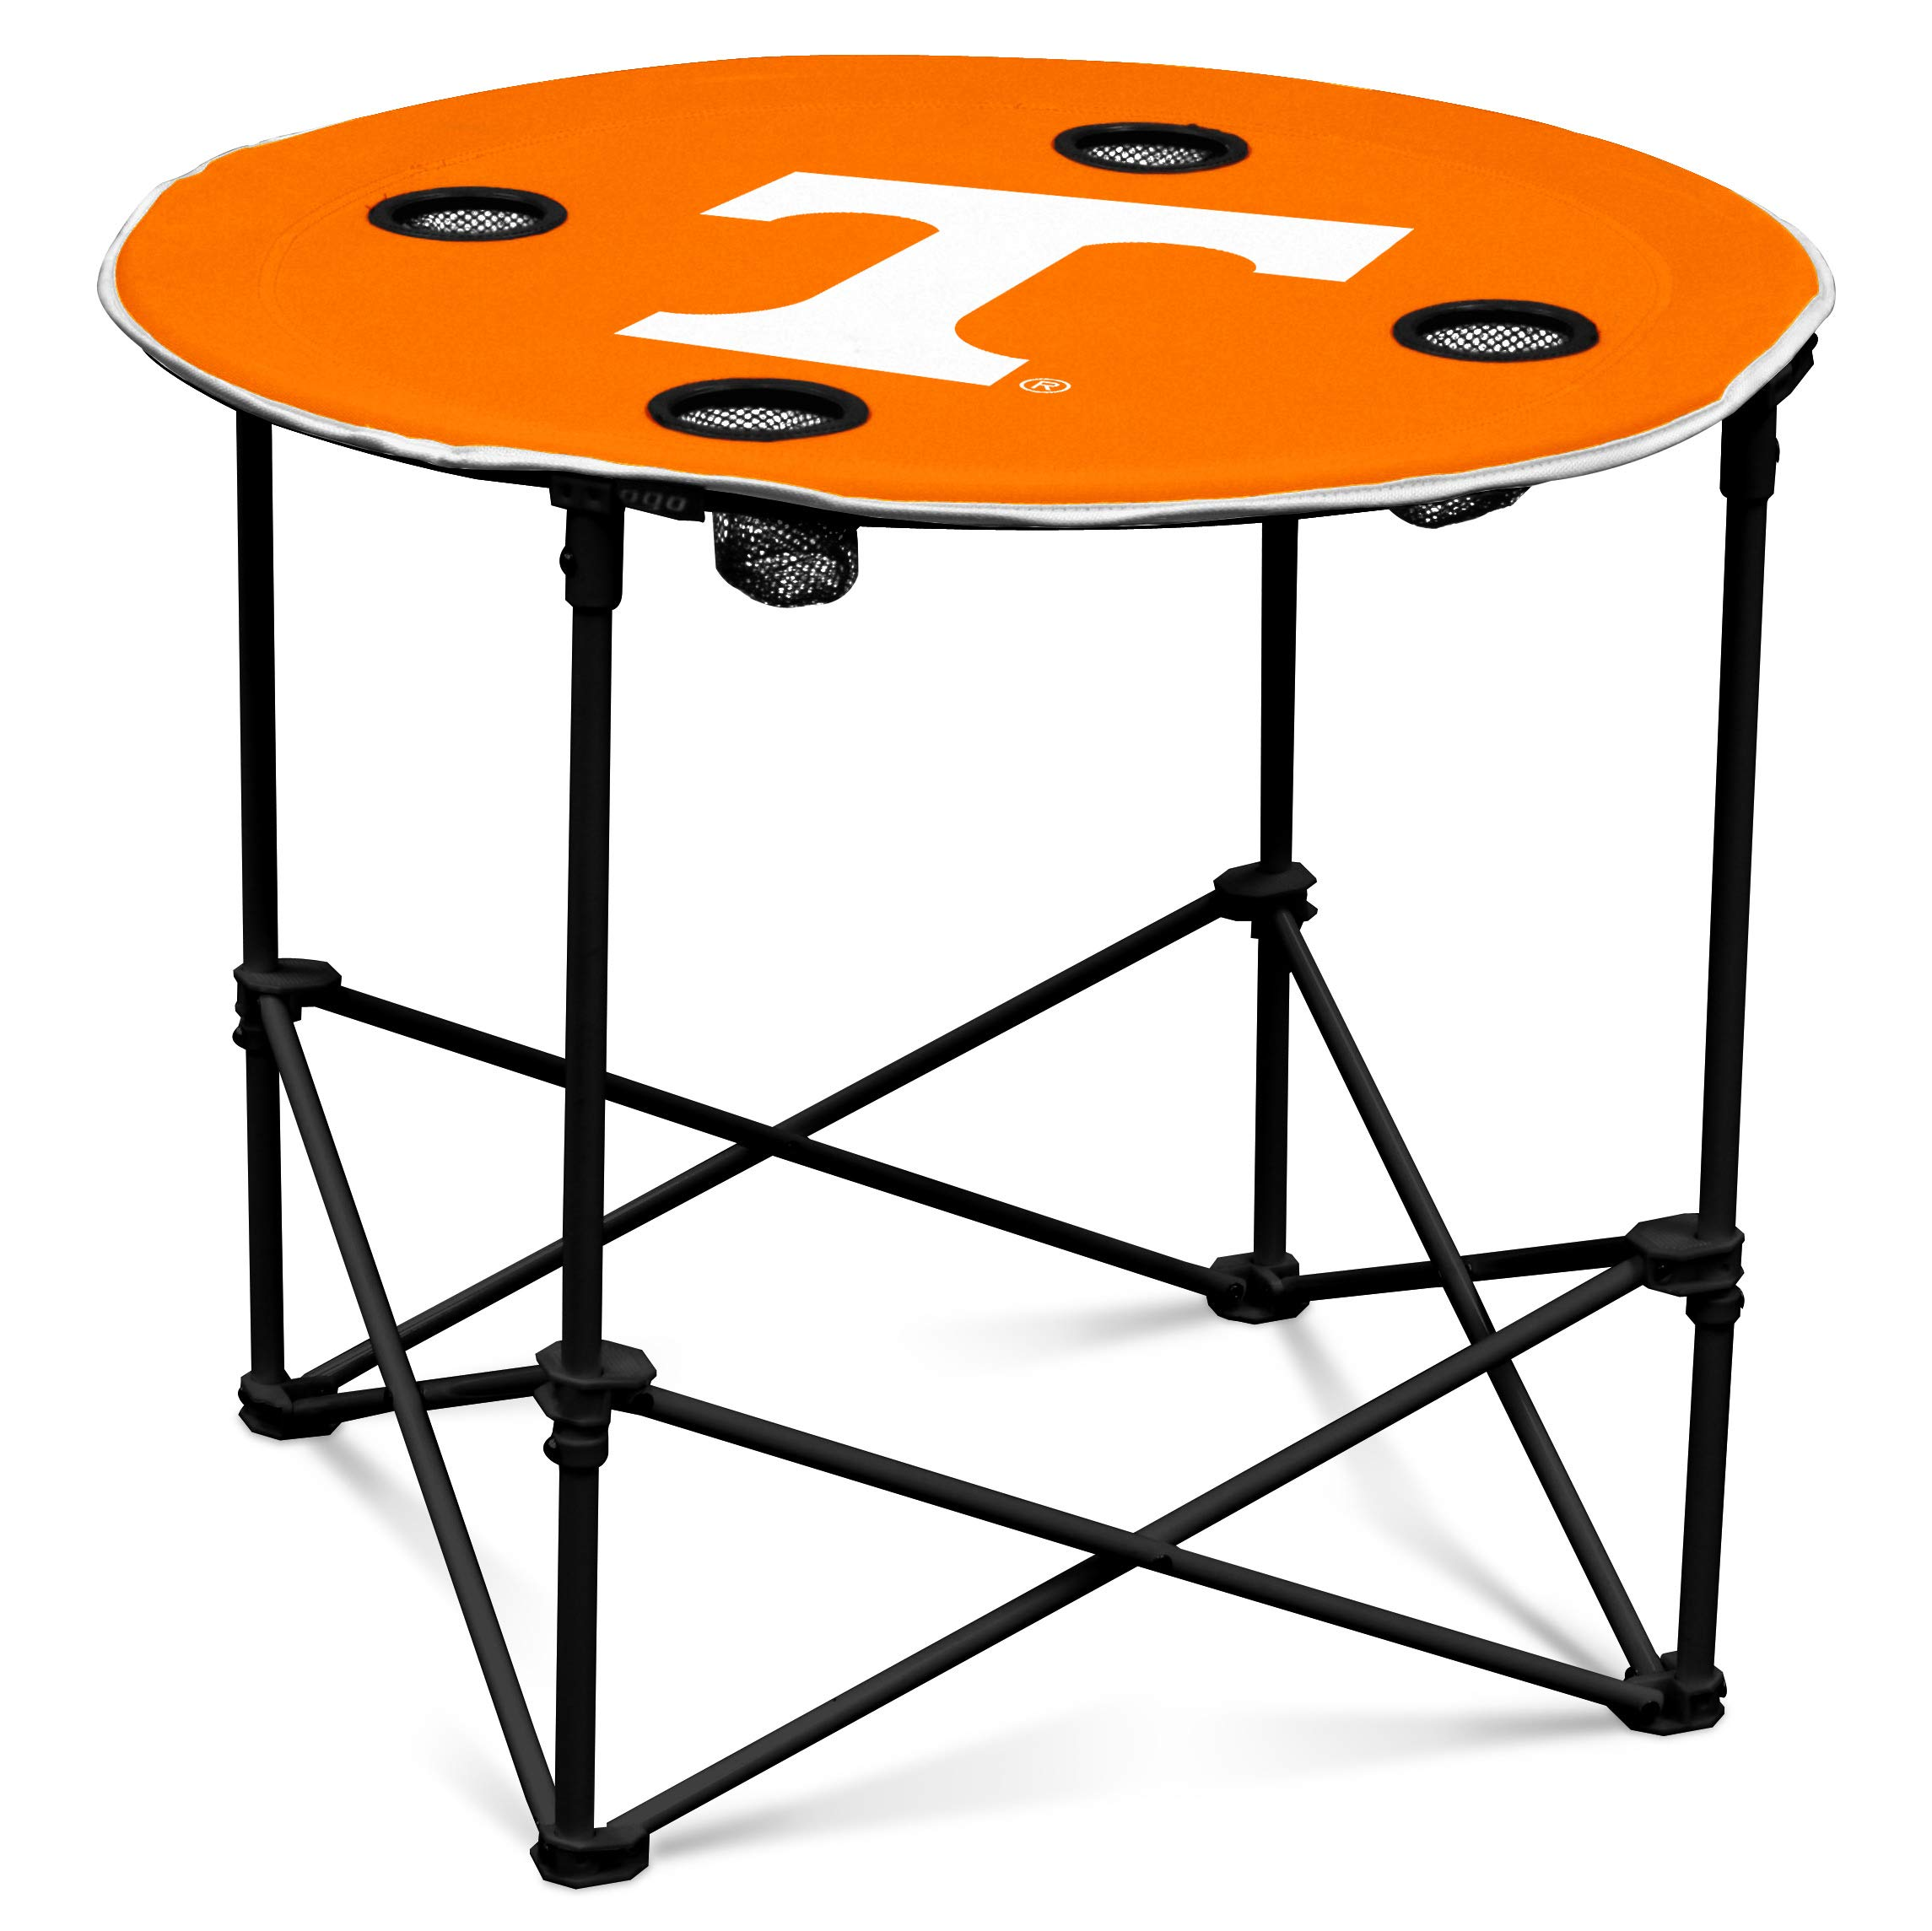 Tennessee Volunteers Collapsible Round Table with 4 Cup Holders and Carry Bag